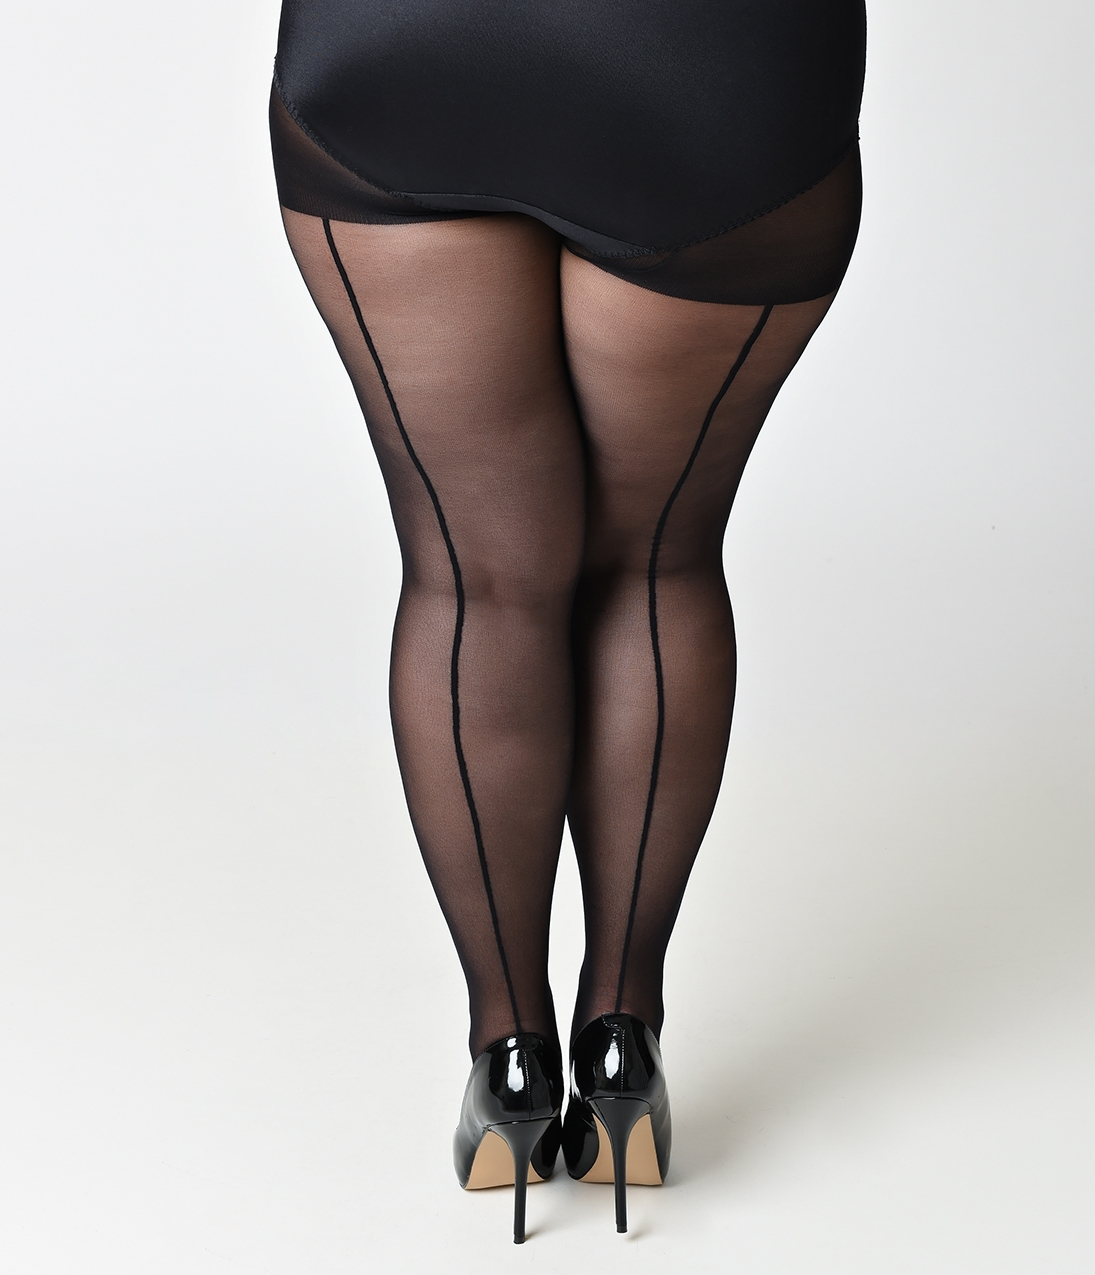 ad16d6449 Why I still wear tights - Fashionmylegs   The tights and hosiery blog